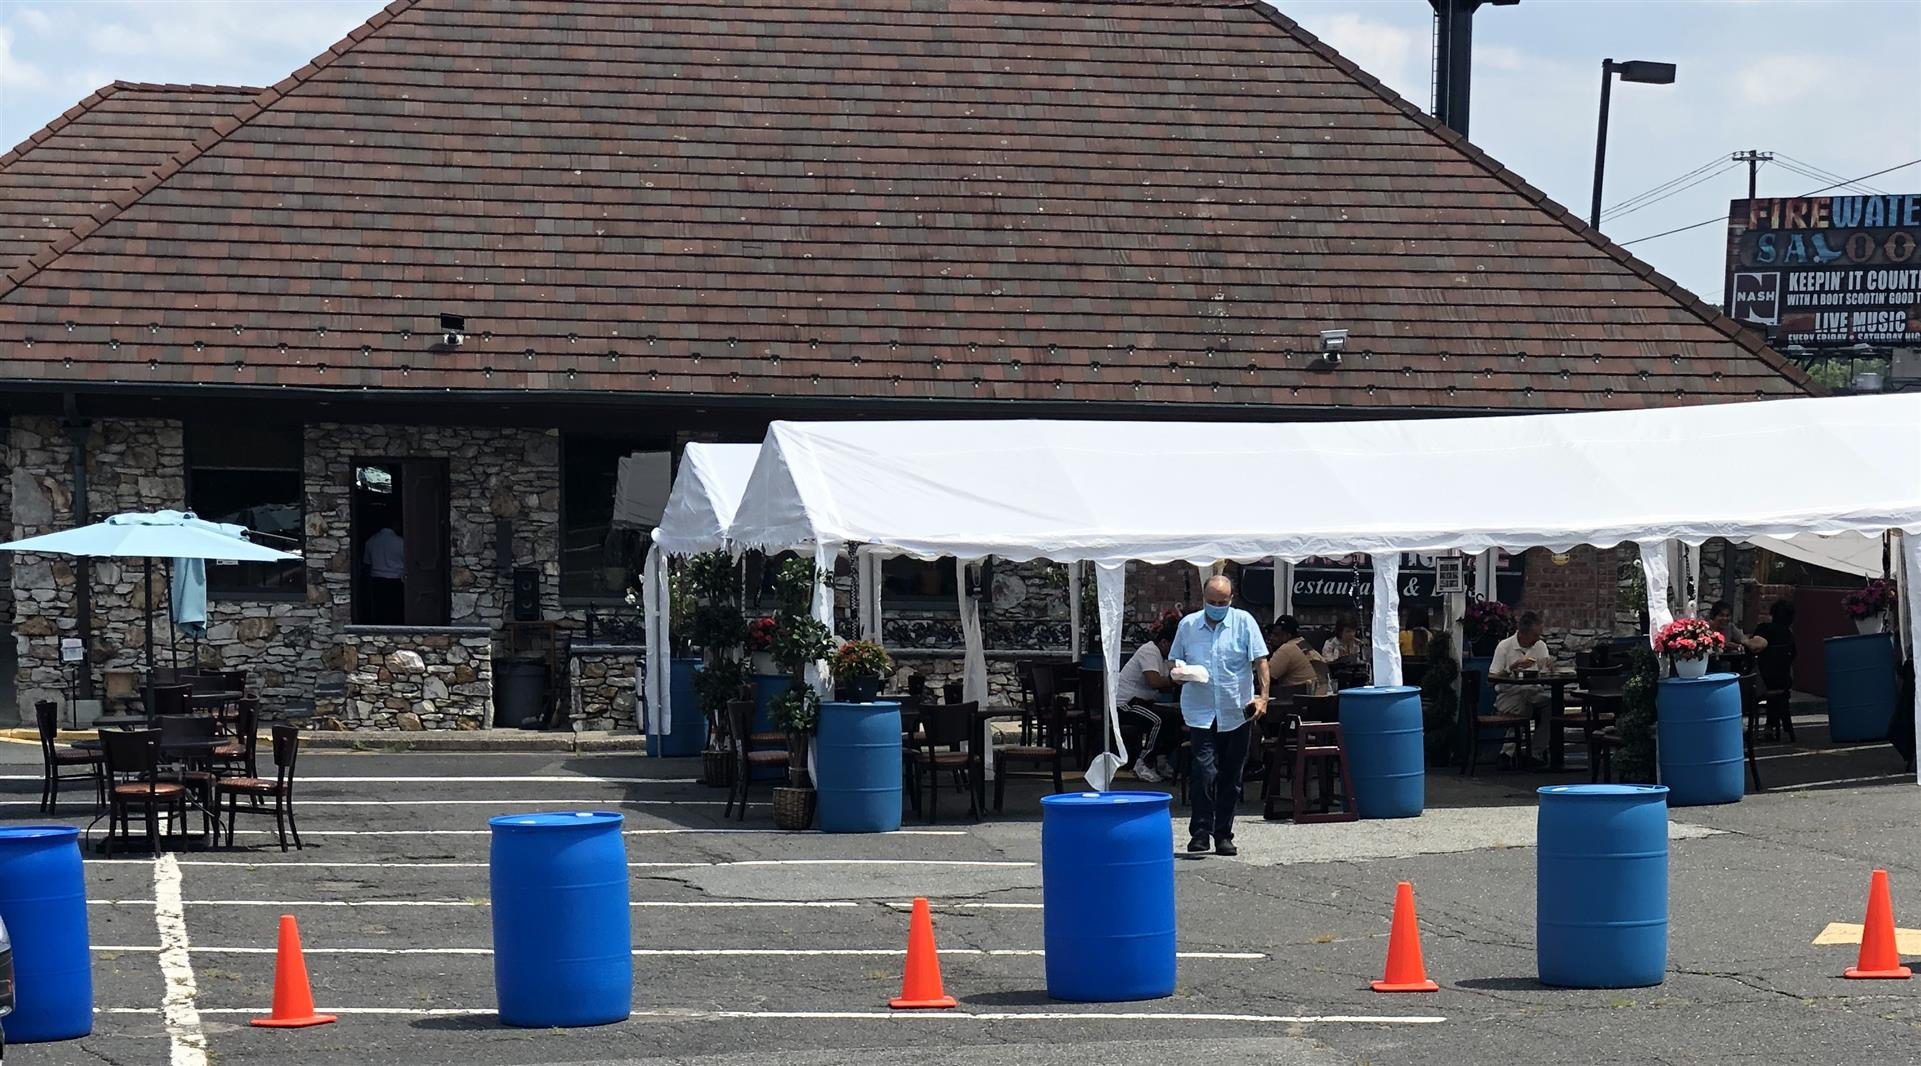 Outdoor dining with tents at Coach House Diner of Hackensack